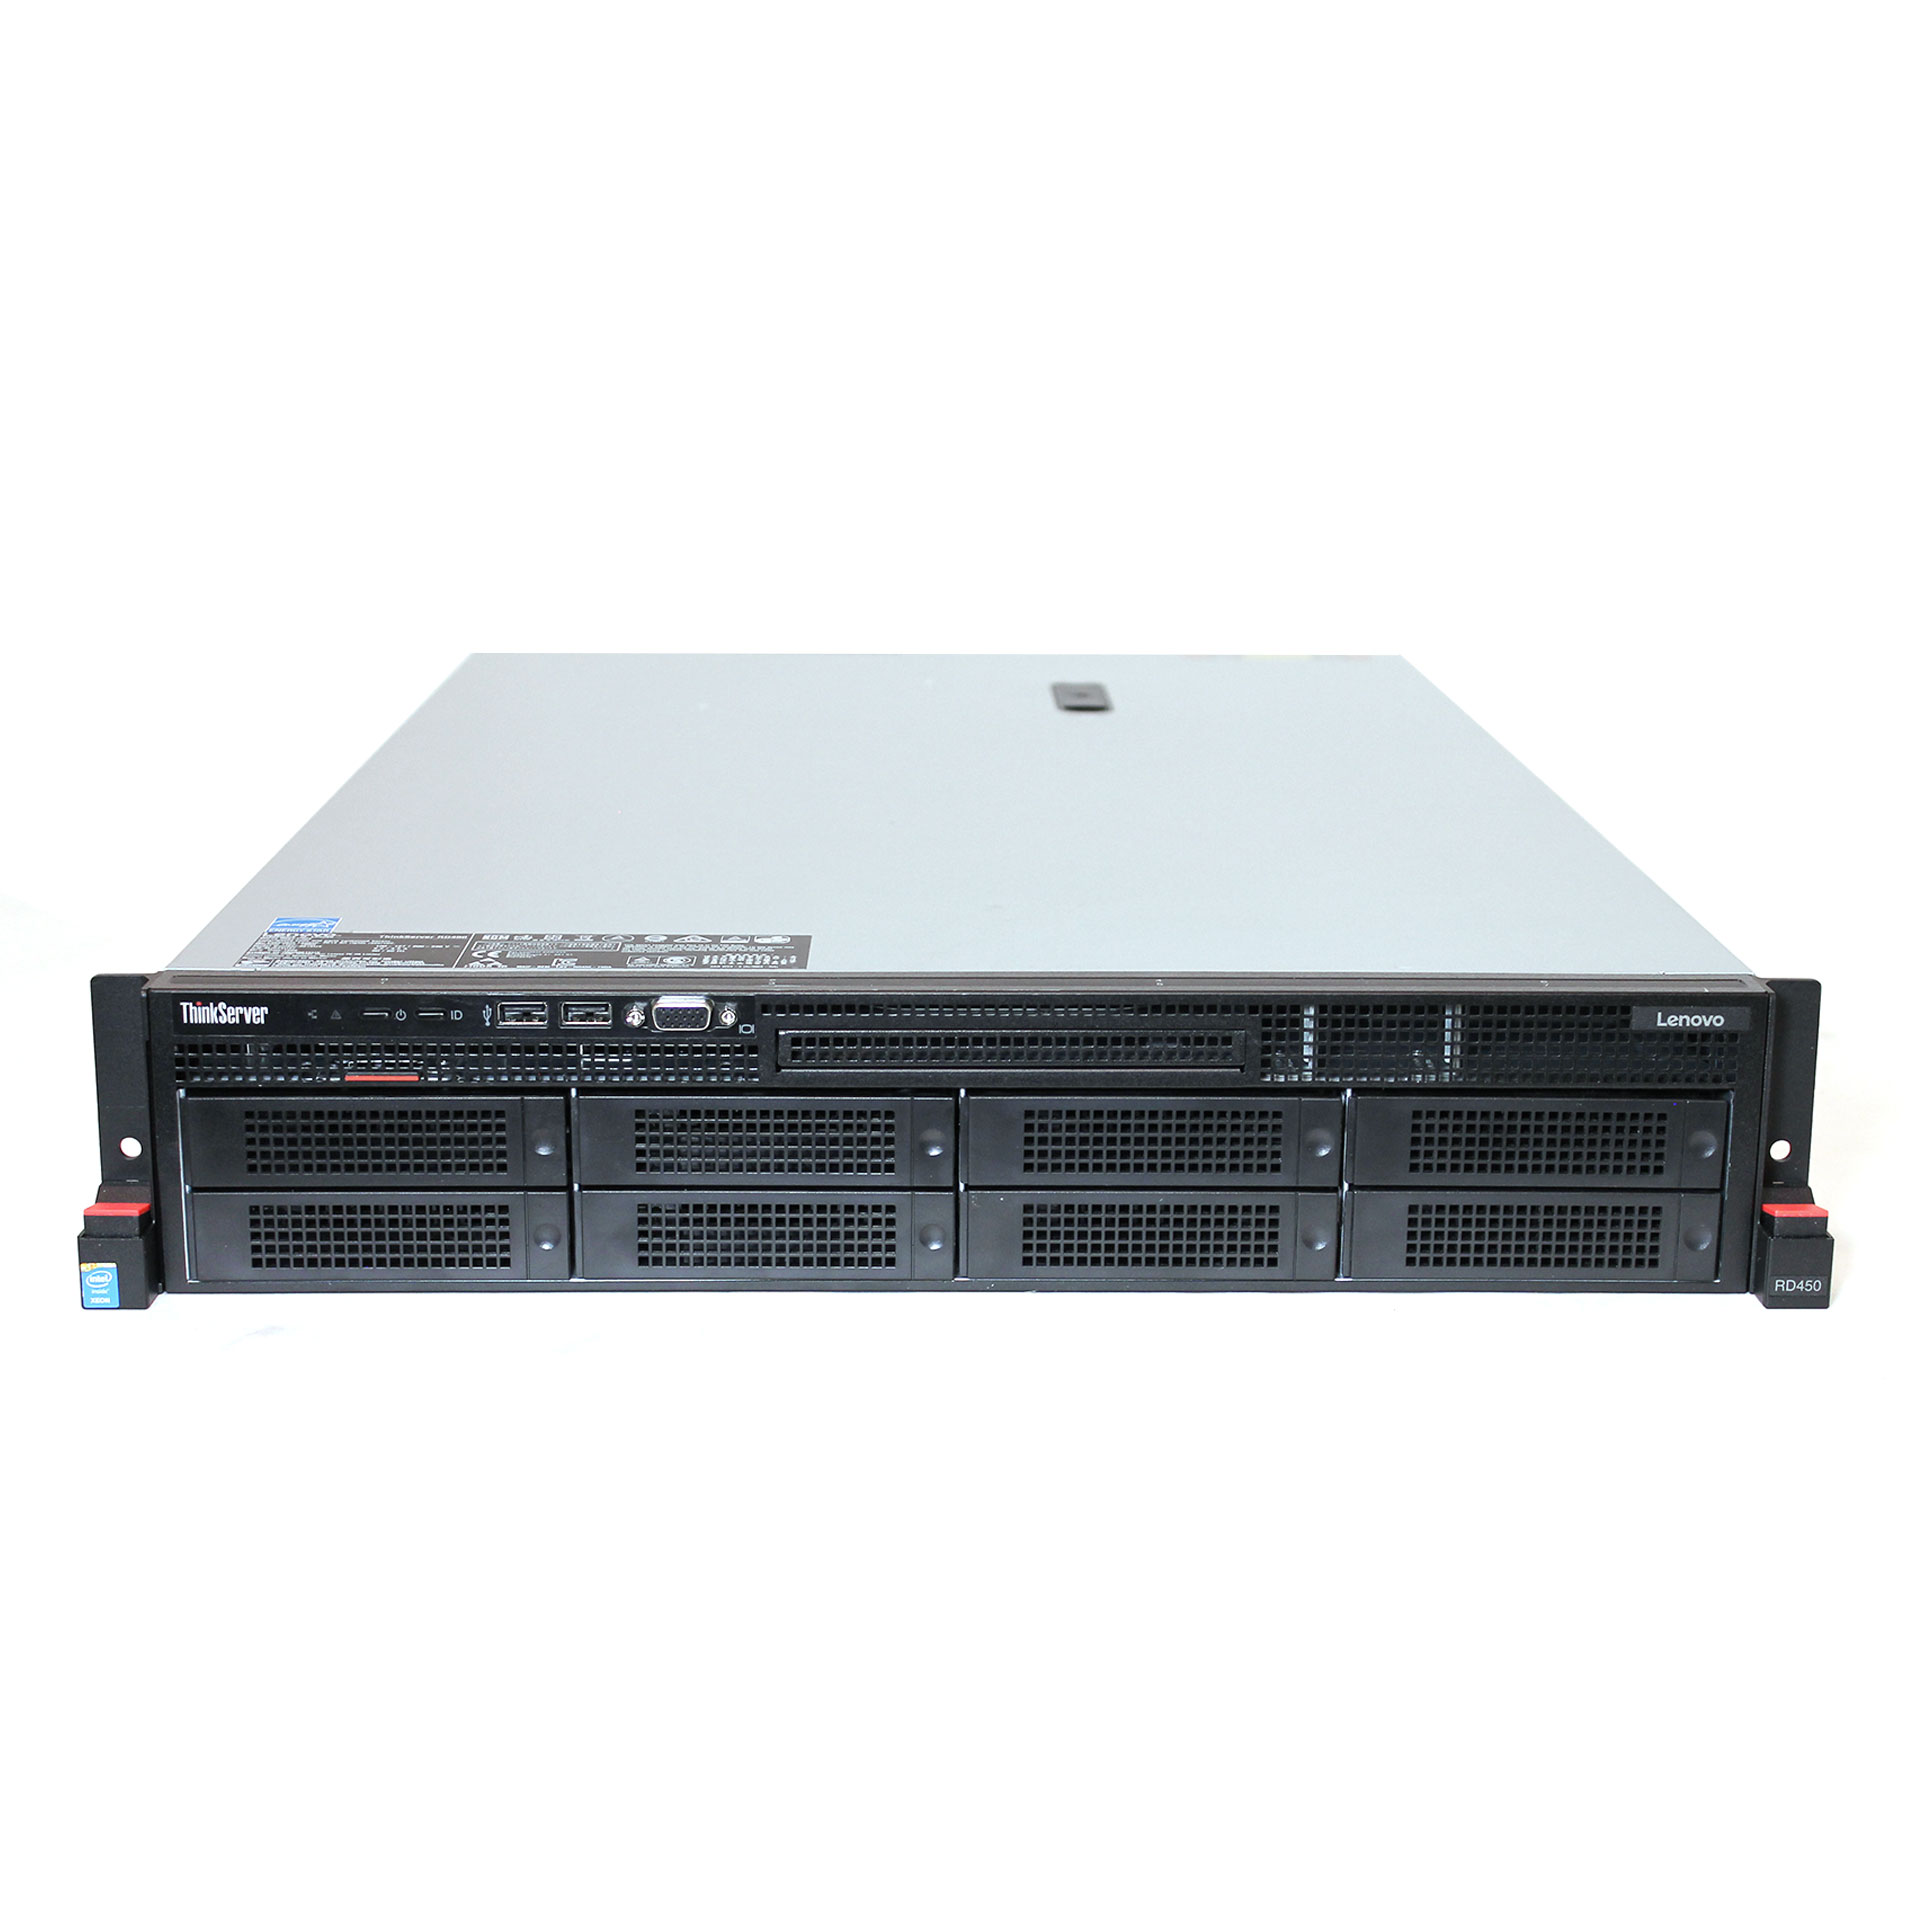 Lenovo ThinkServer 2U Server 70QQ0015UX RD450 E5-2620 v4 16GB